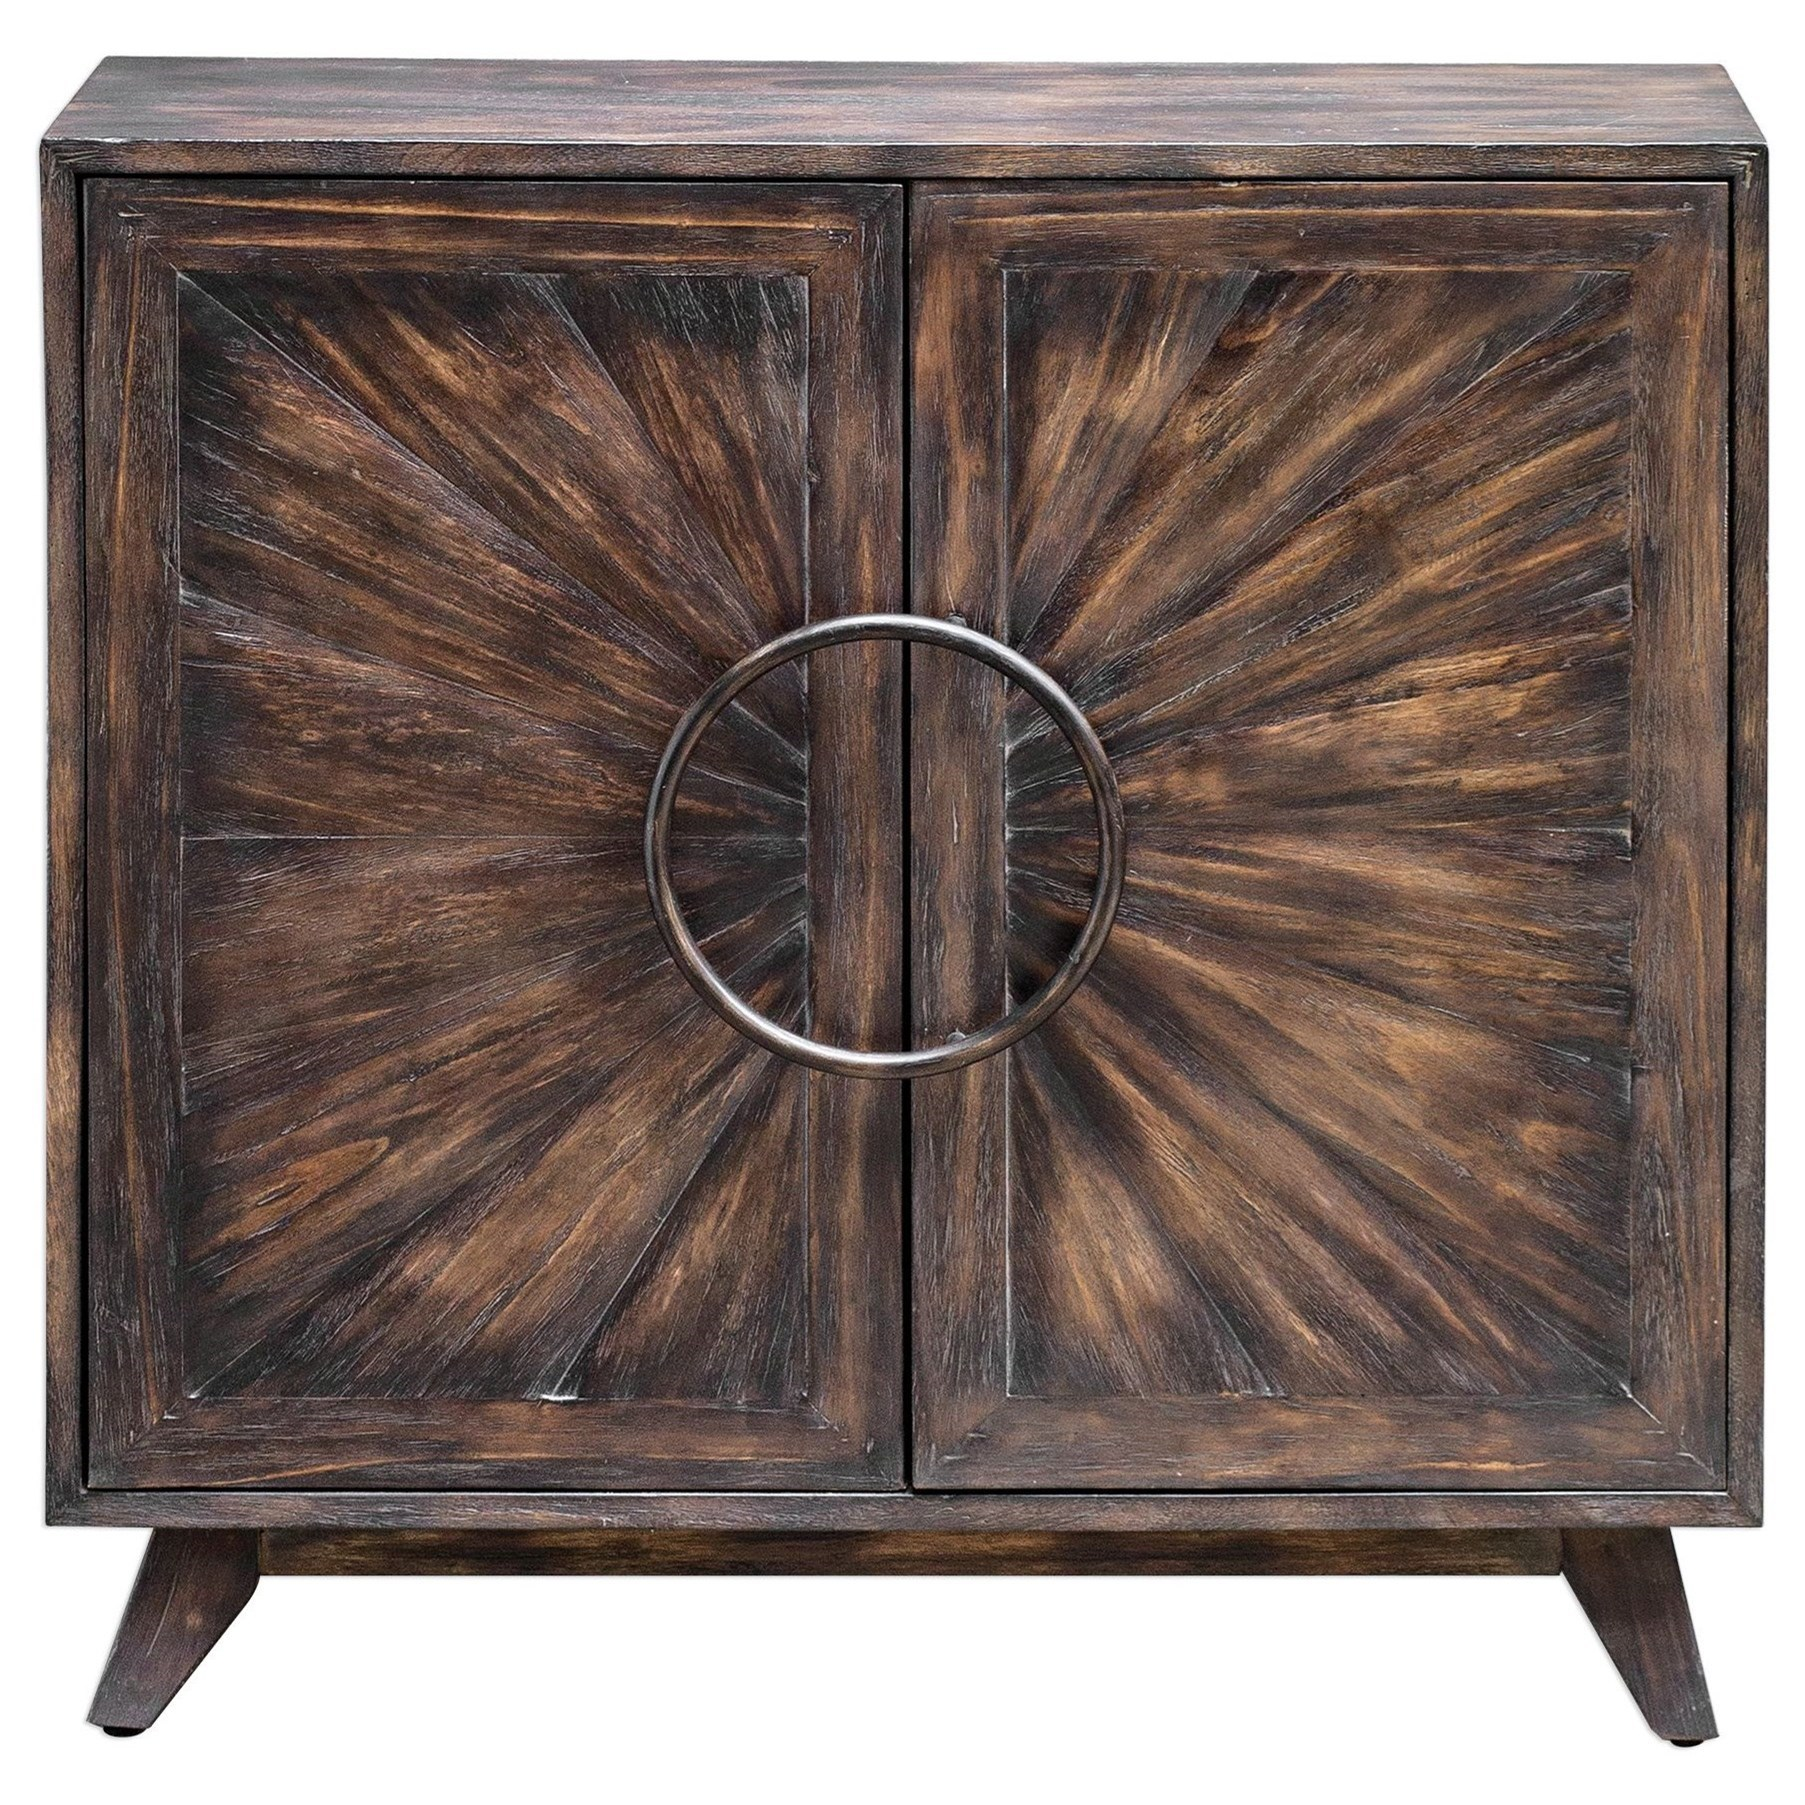 Accent Furniture - Chests Kohana Black Console Cabinet by Uttermost at Del Sol Furniture